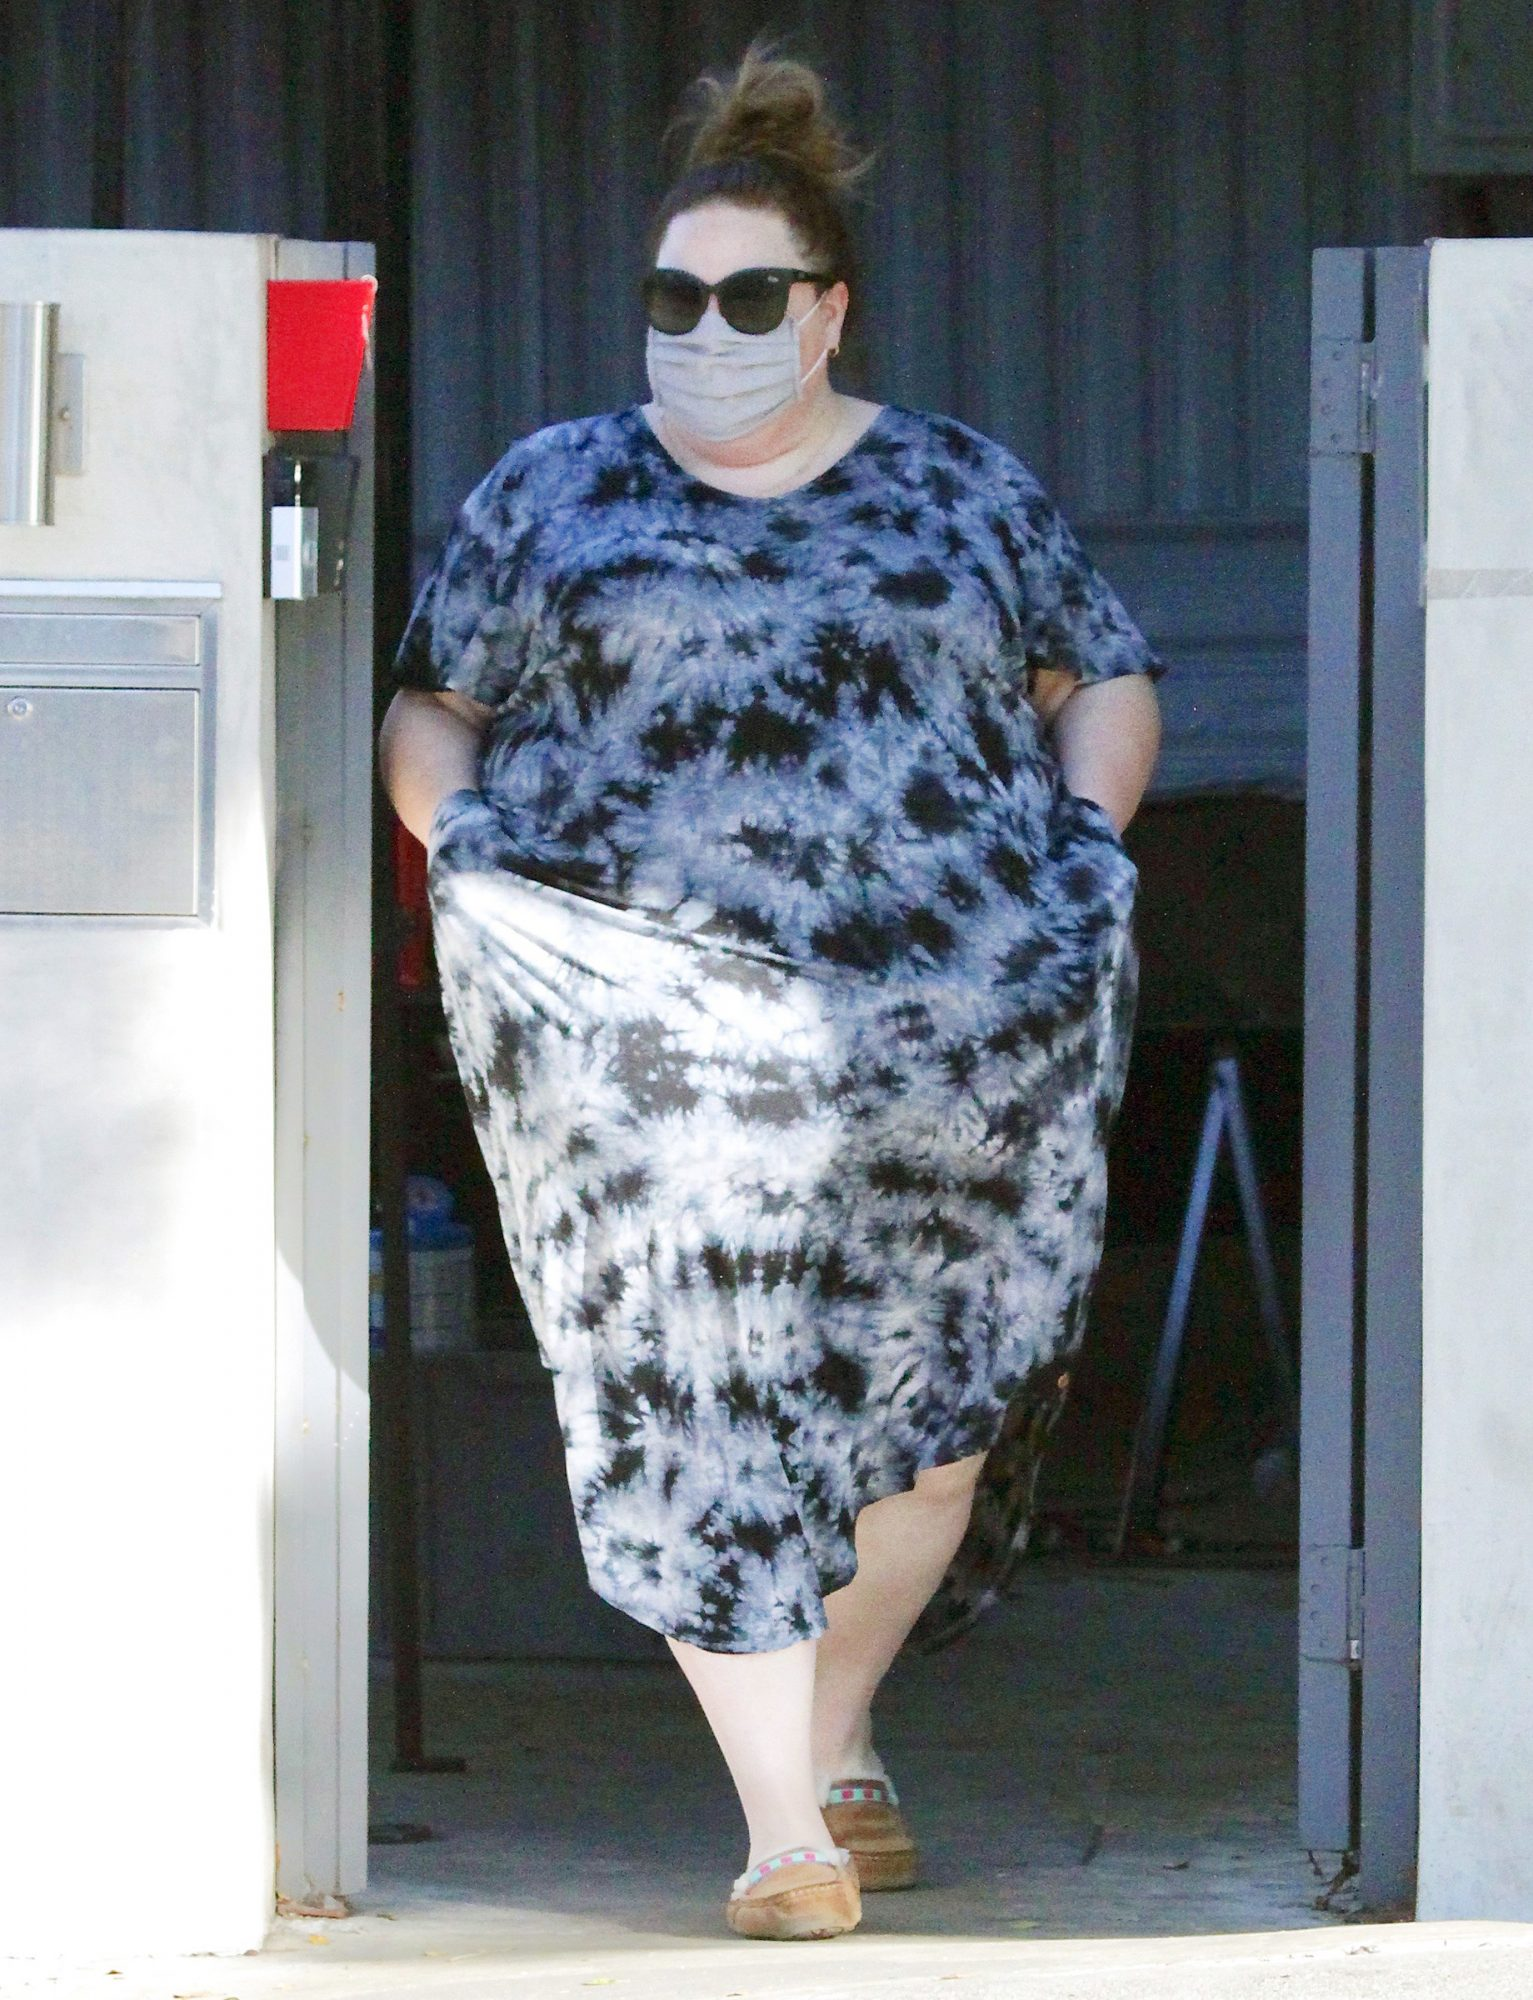 Chrissy Metz Seen Running Errands Without a Ring She Was Seen Wearing Days Earlier Which Sparked Engagement Rumors.